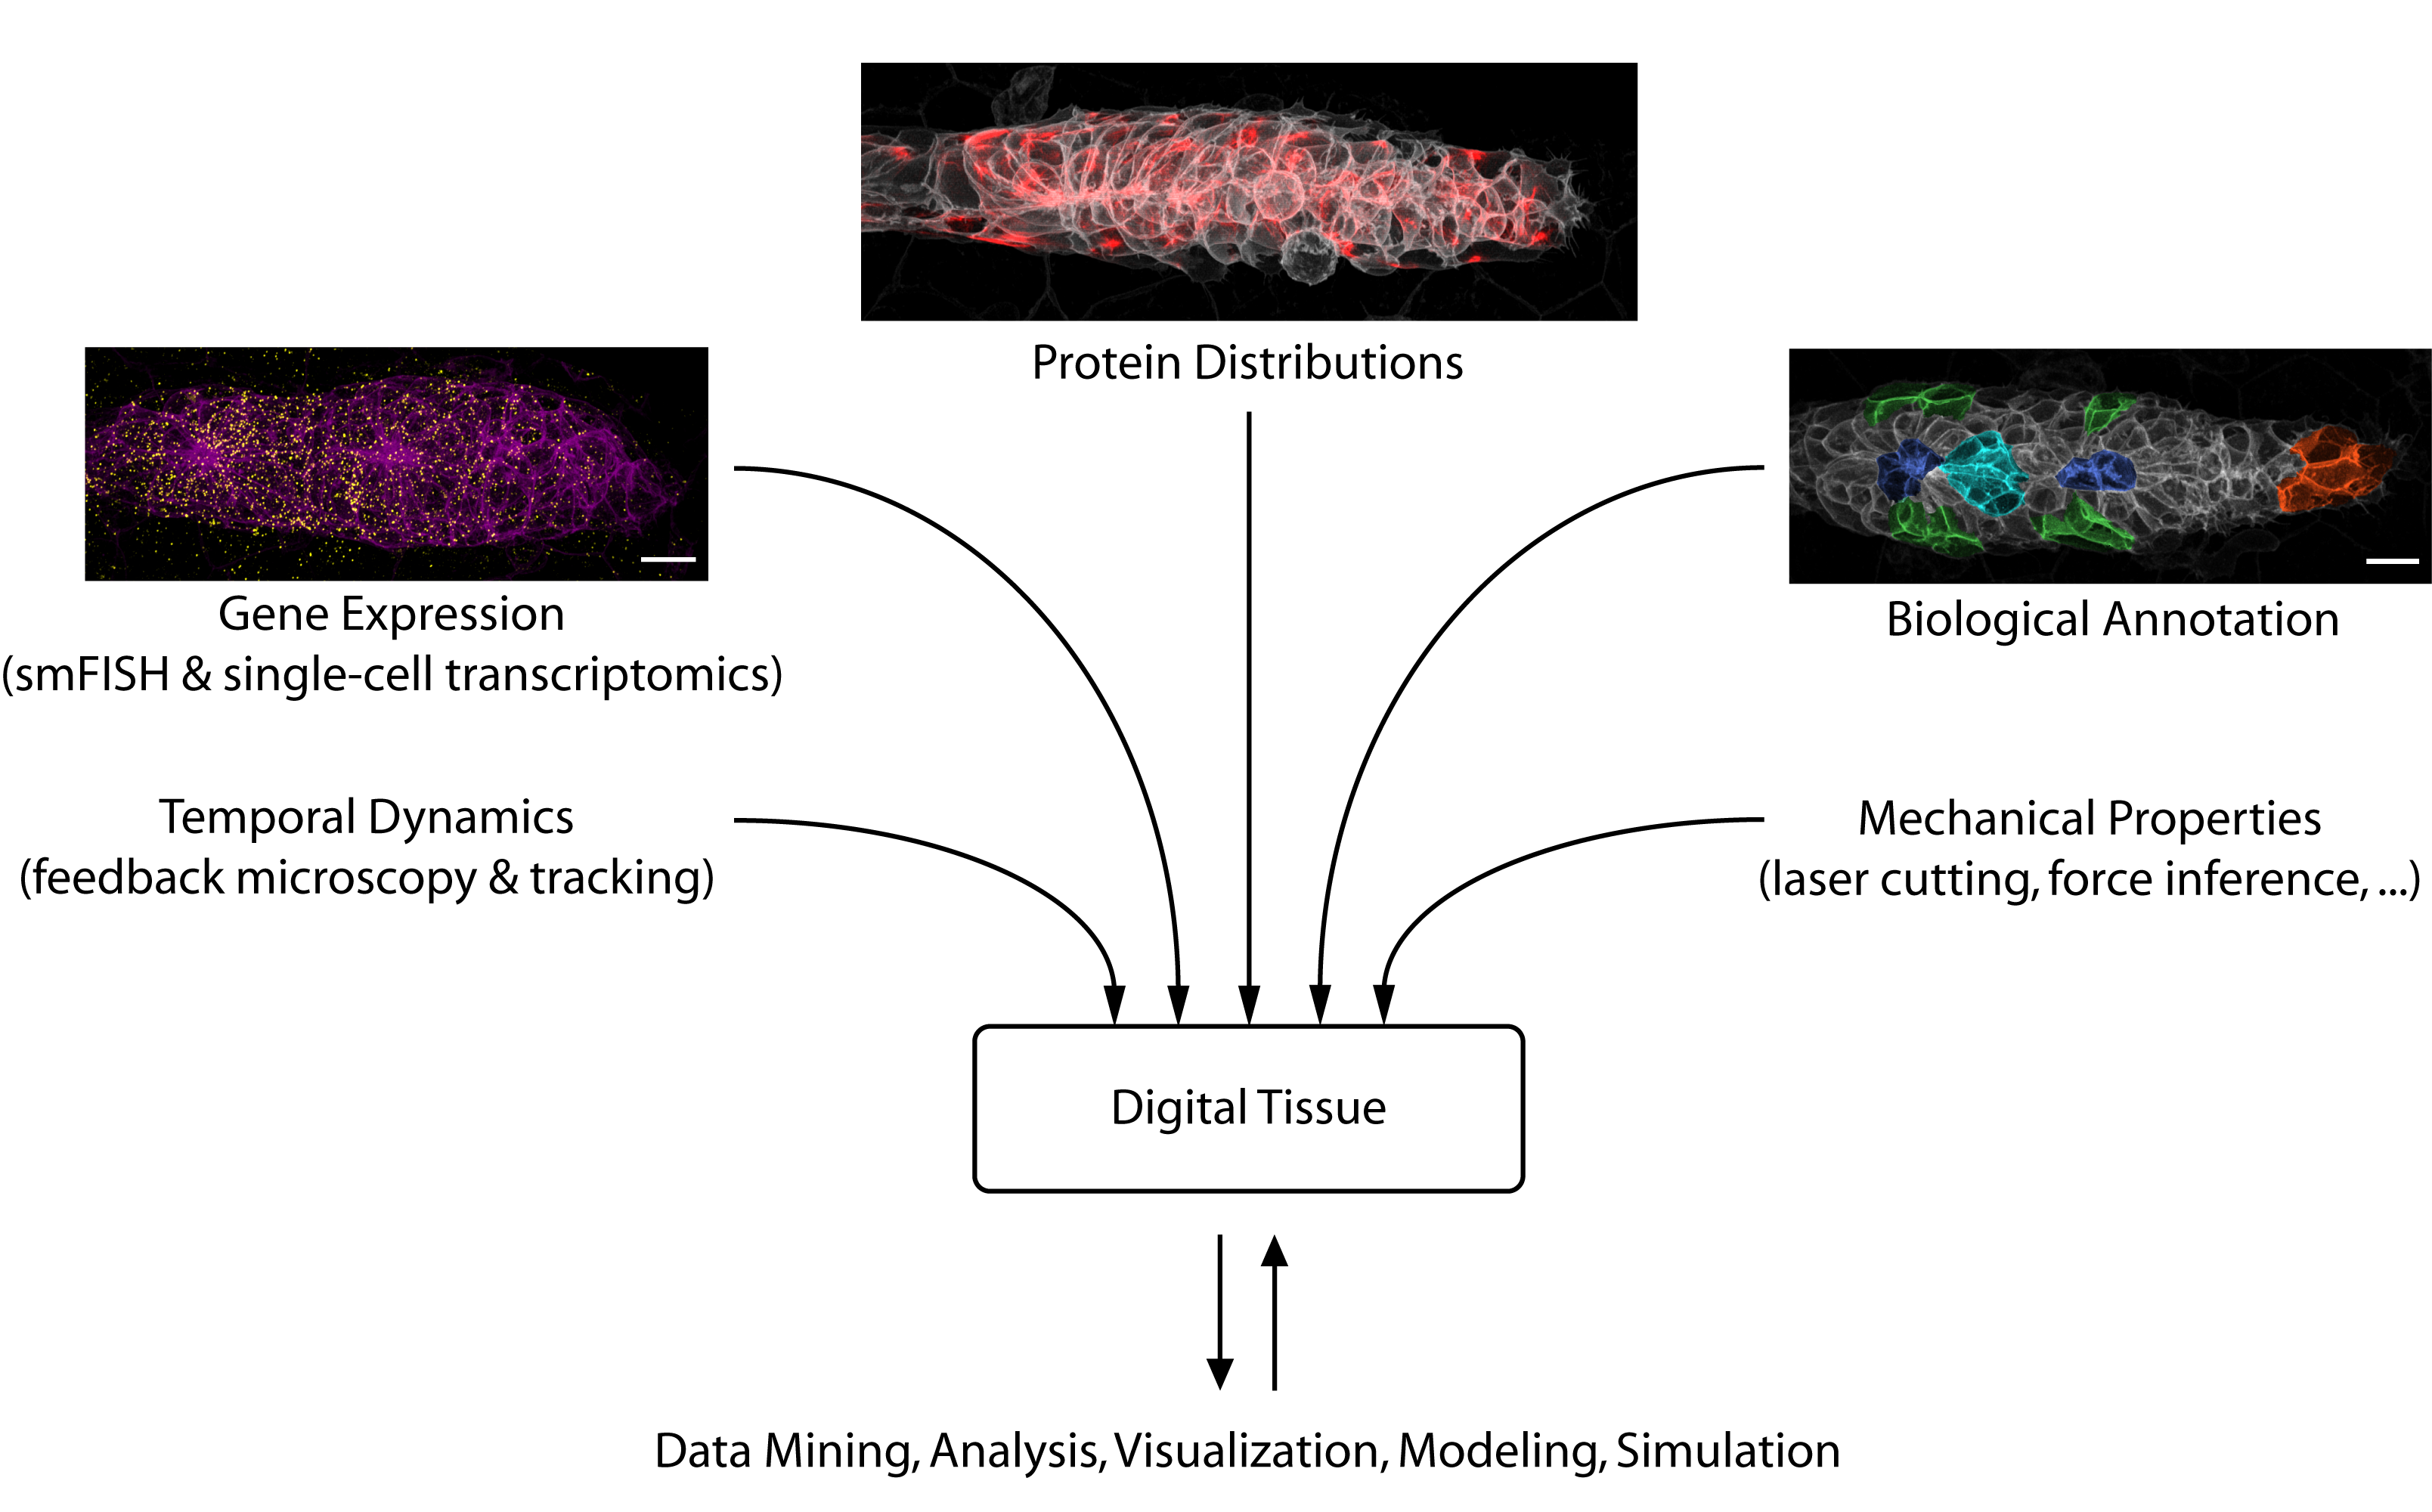 Illustration of Digital Tissue Database